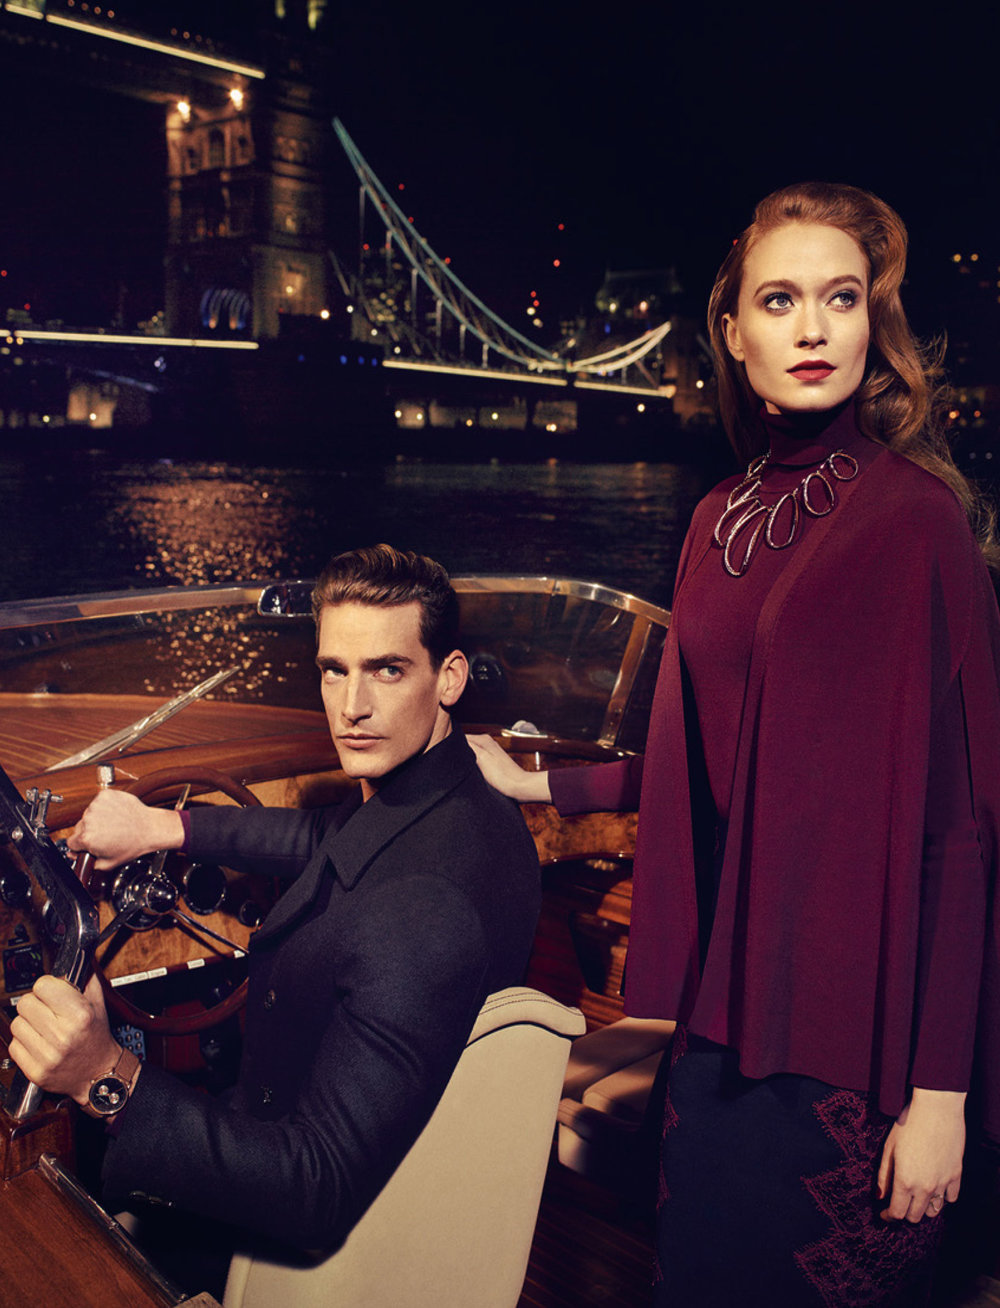 ted-baker_winter17-watches-advert_scorpio-worldwide_travel-retail-distributor